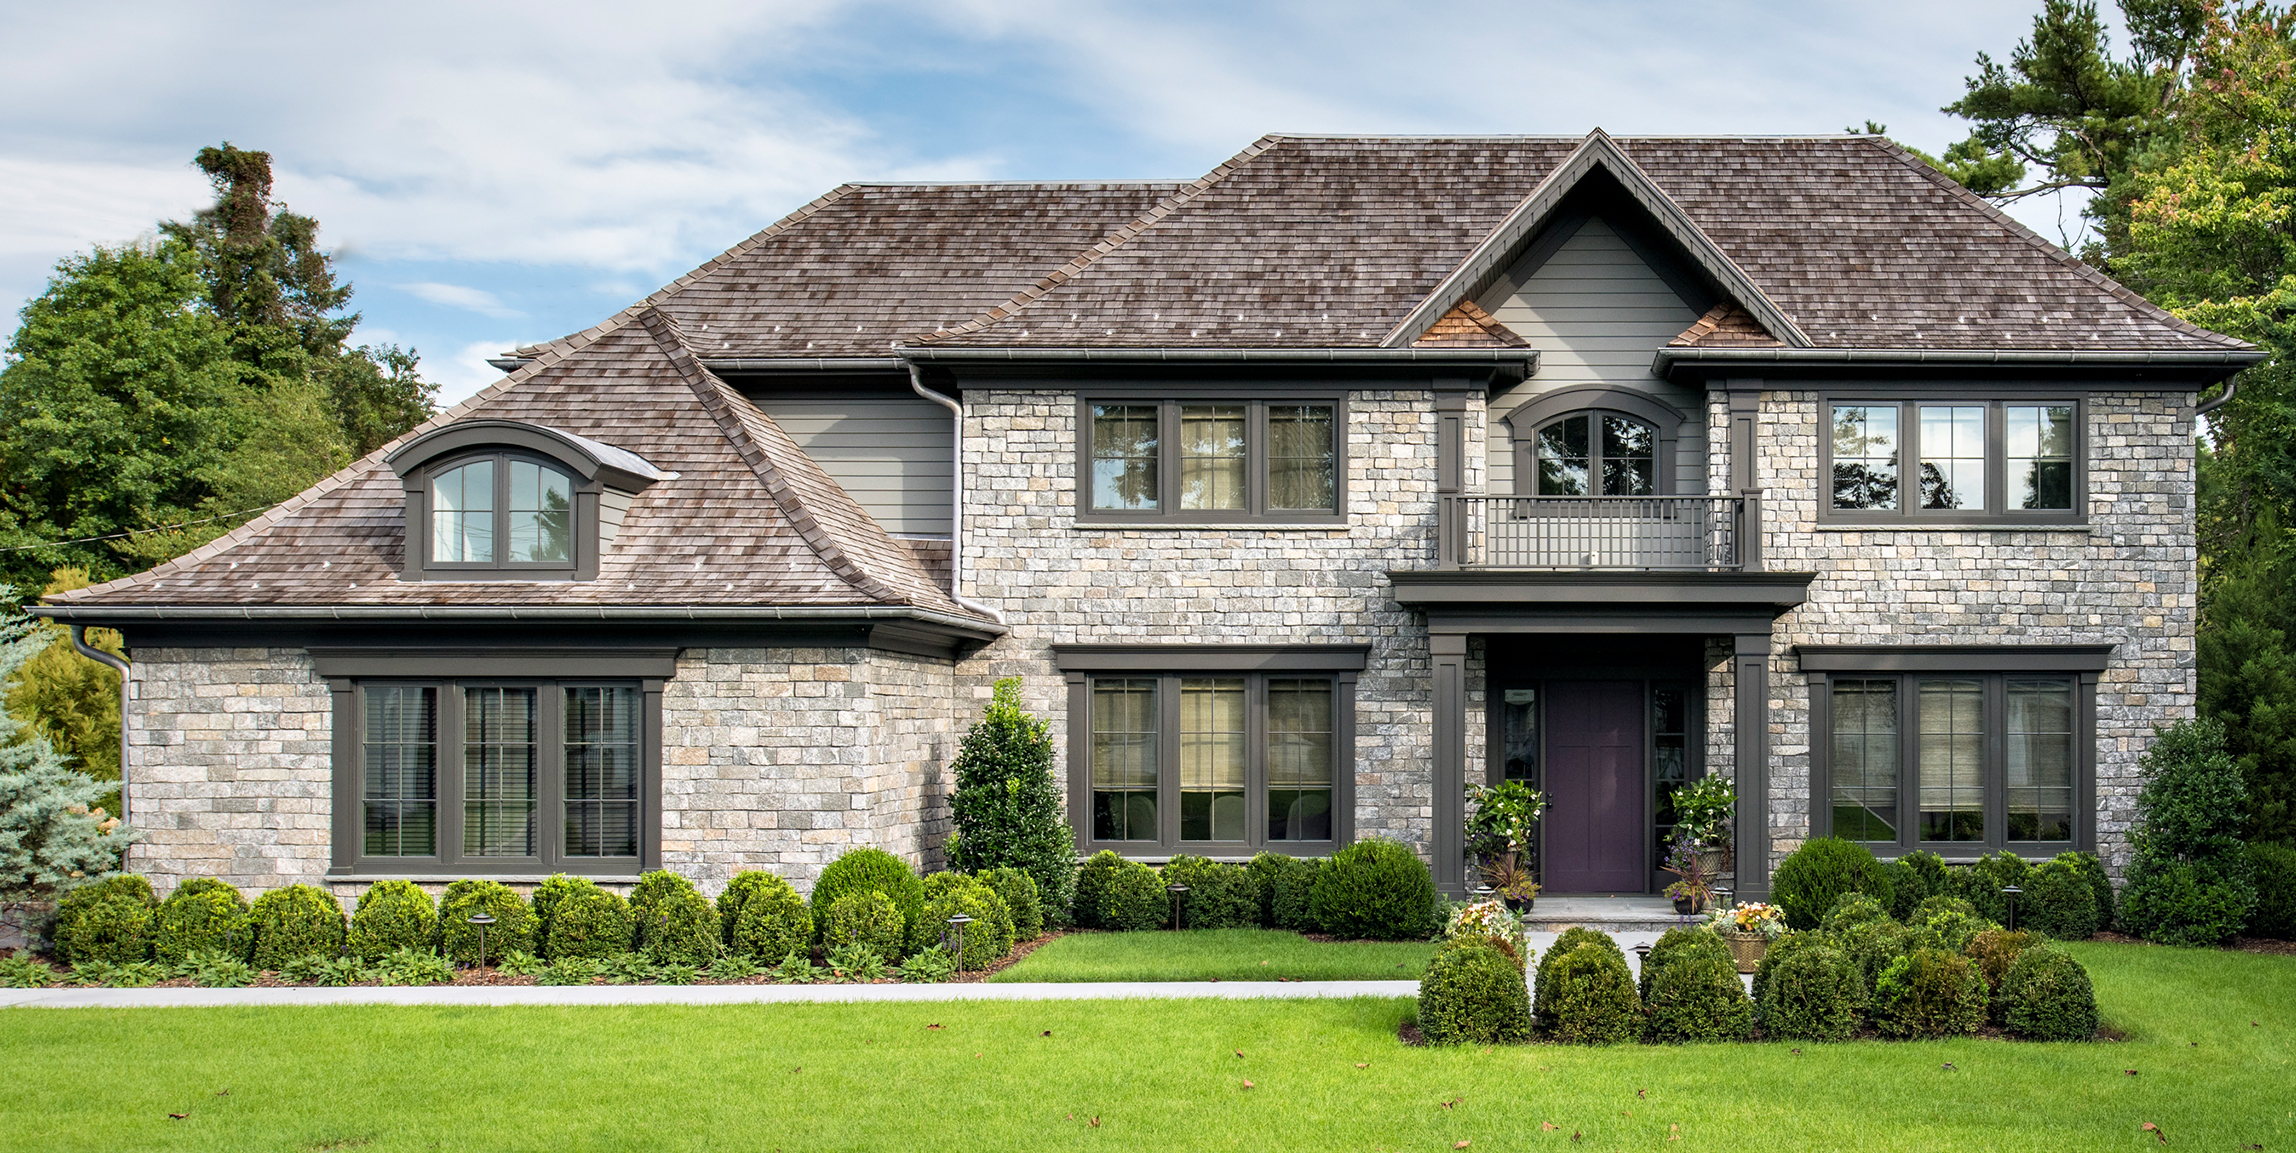 Exterior photo of a stone and cedar roof home